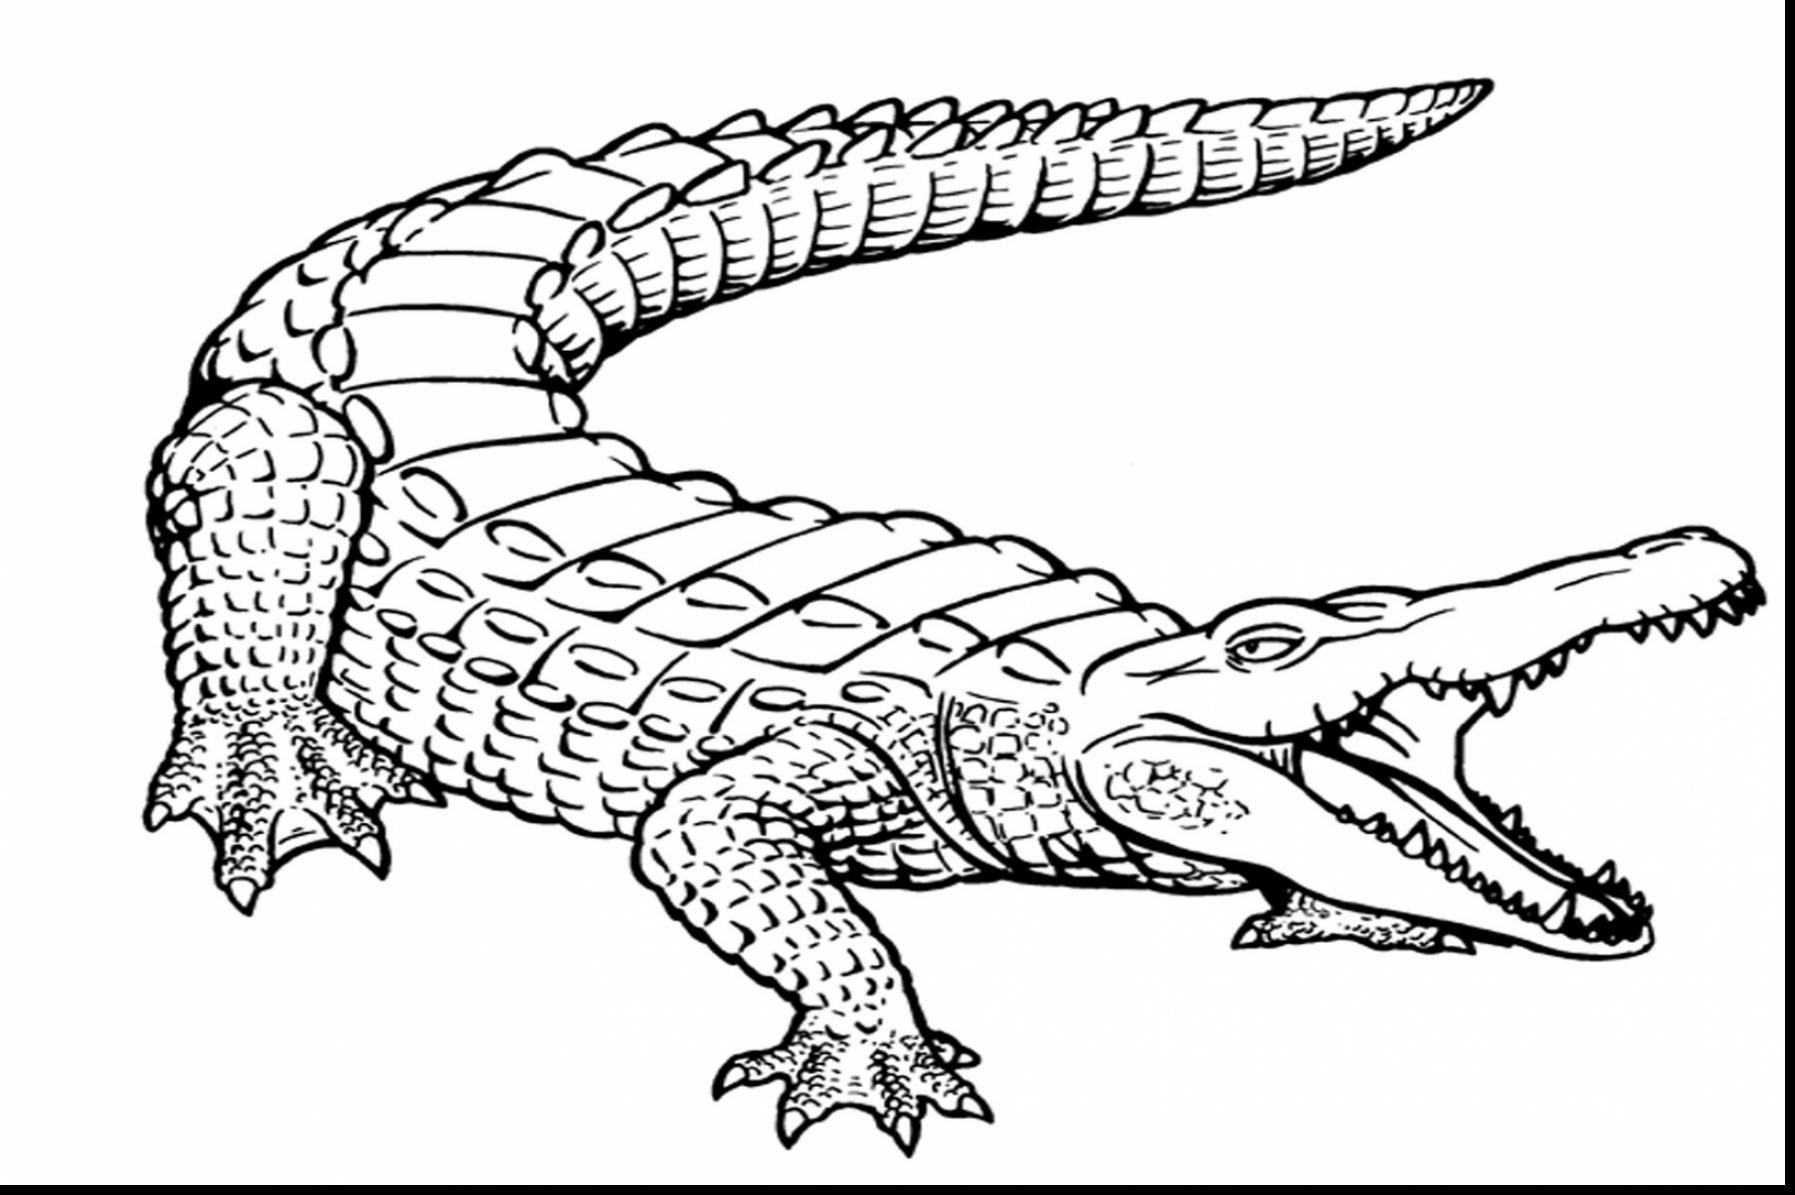 alligator drawing crocodile line drawing at getdrawings free download drawing alligator